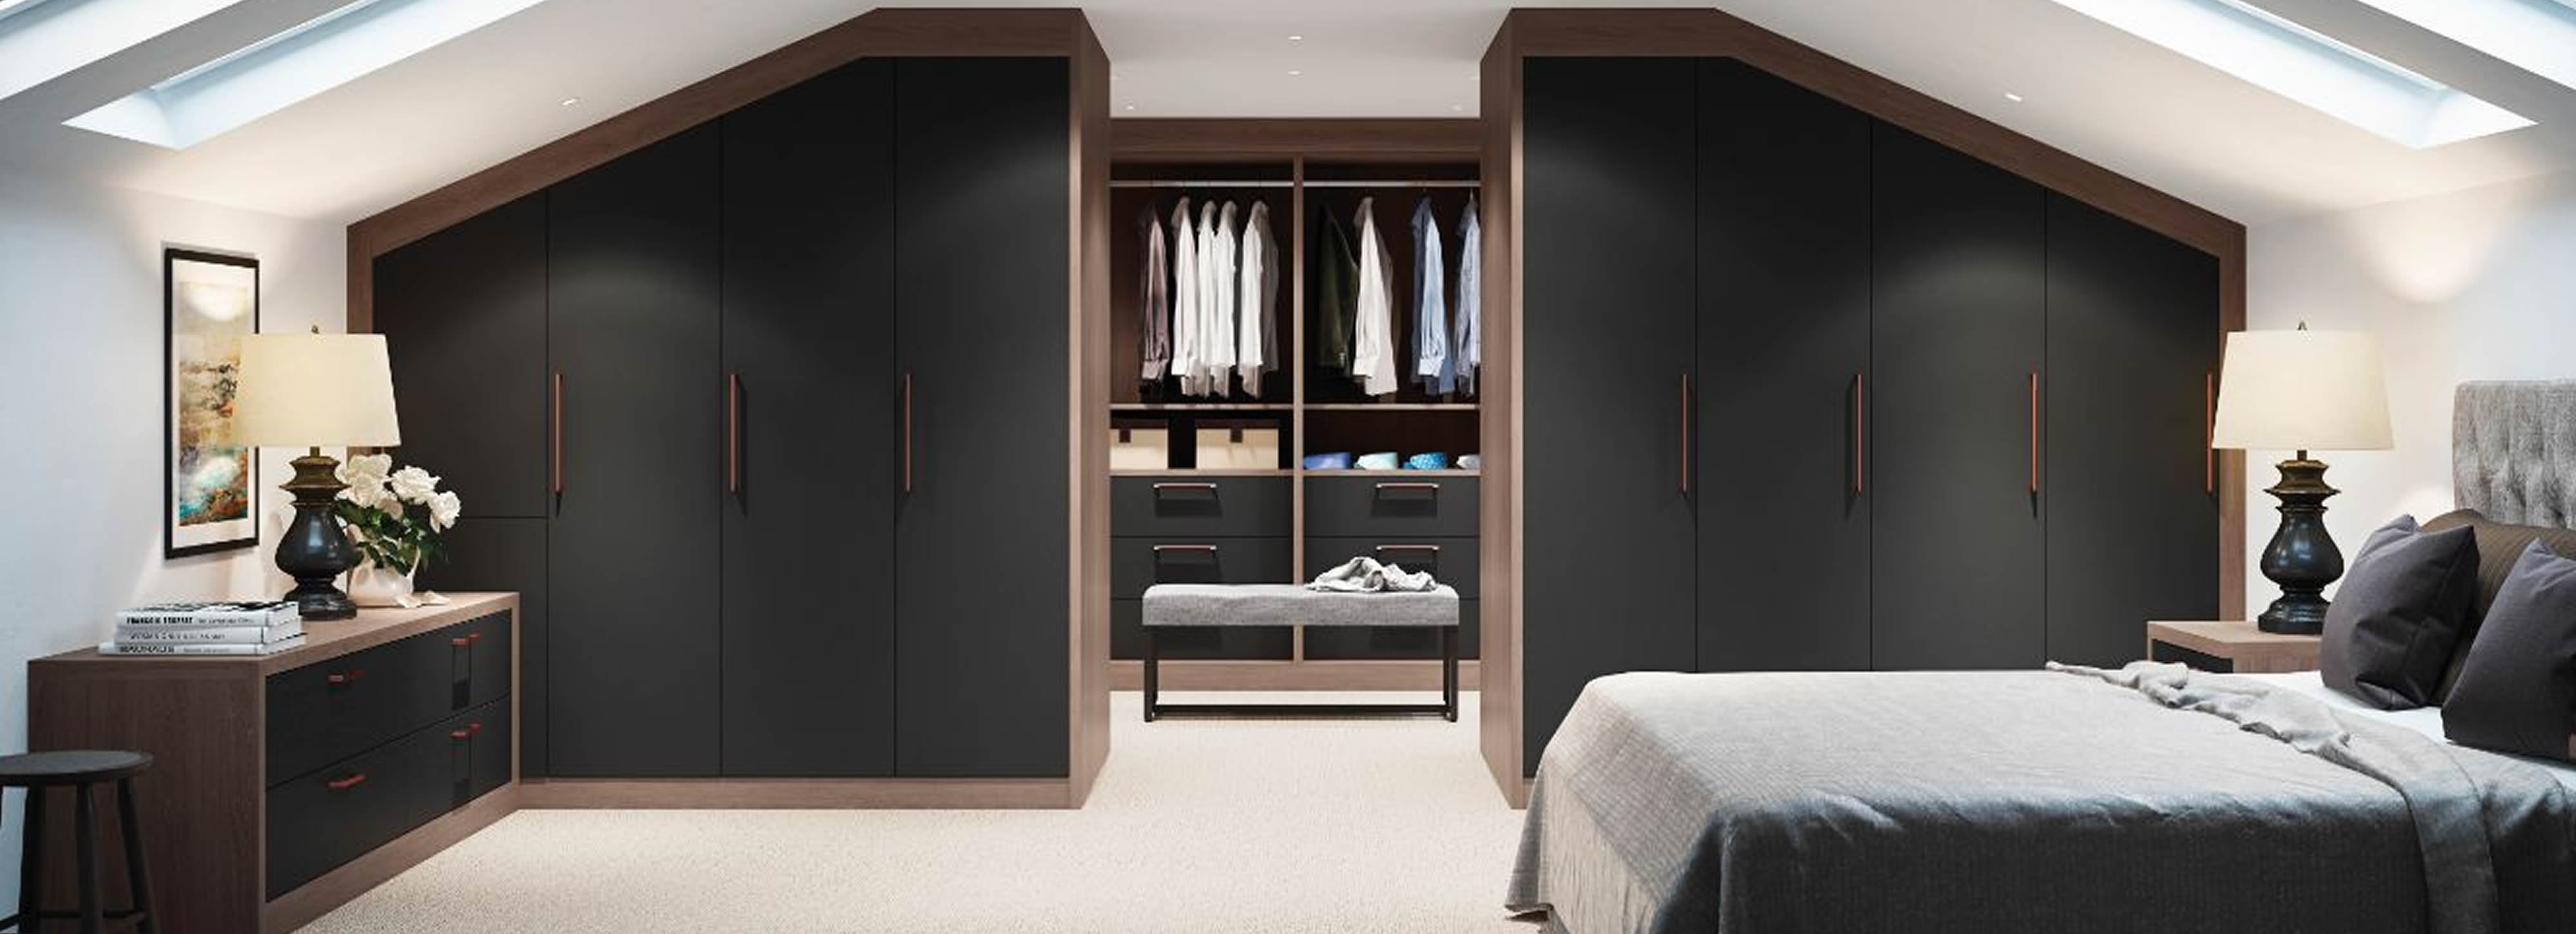 Fitted Wardrobes Gallery